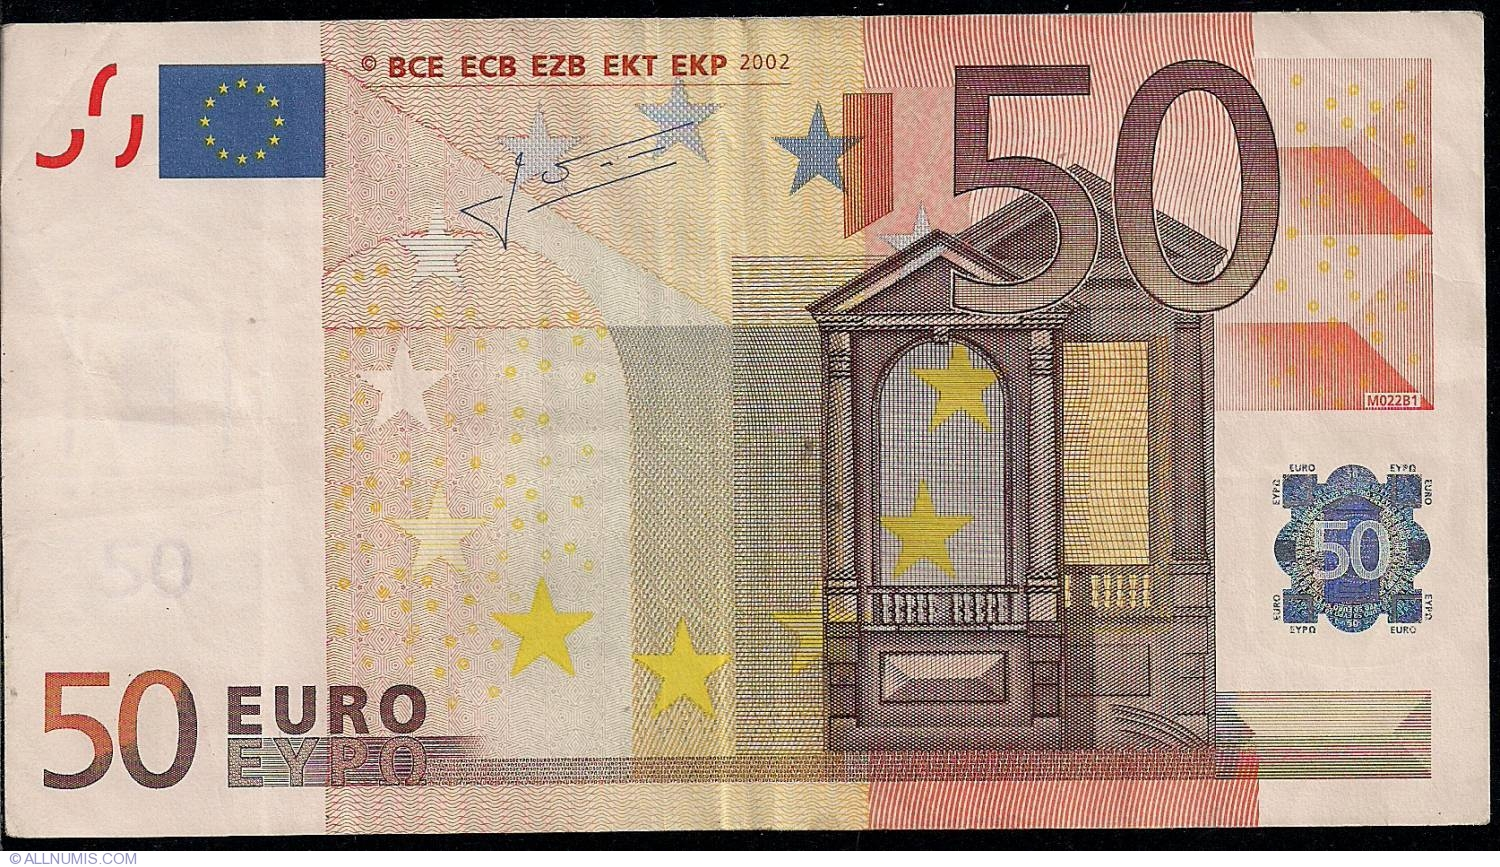 How Can You Buy Bitcoins >> 50 Euro 2002 V (Spain), 2002 Issue - 50 Euro (Signature Jean-Claude Trichet) - European Union ...